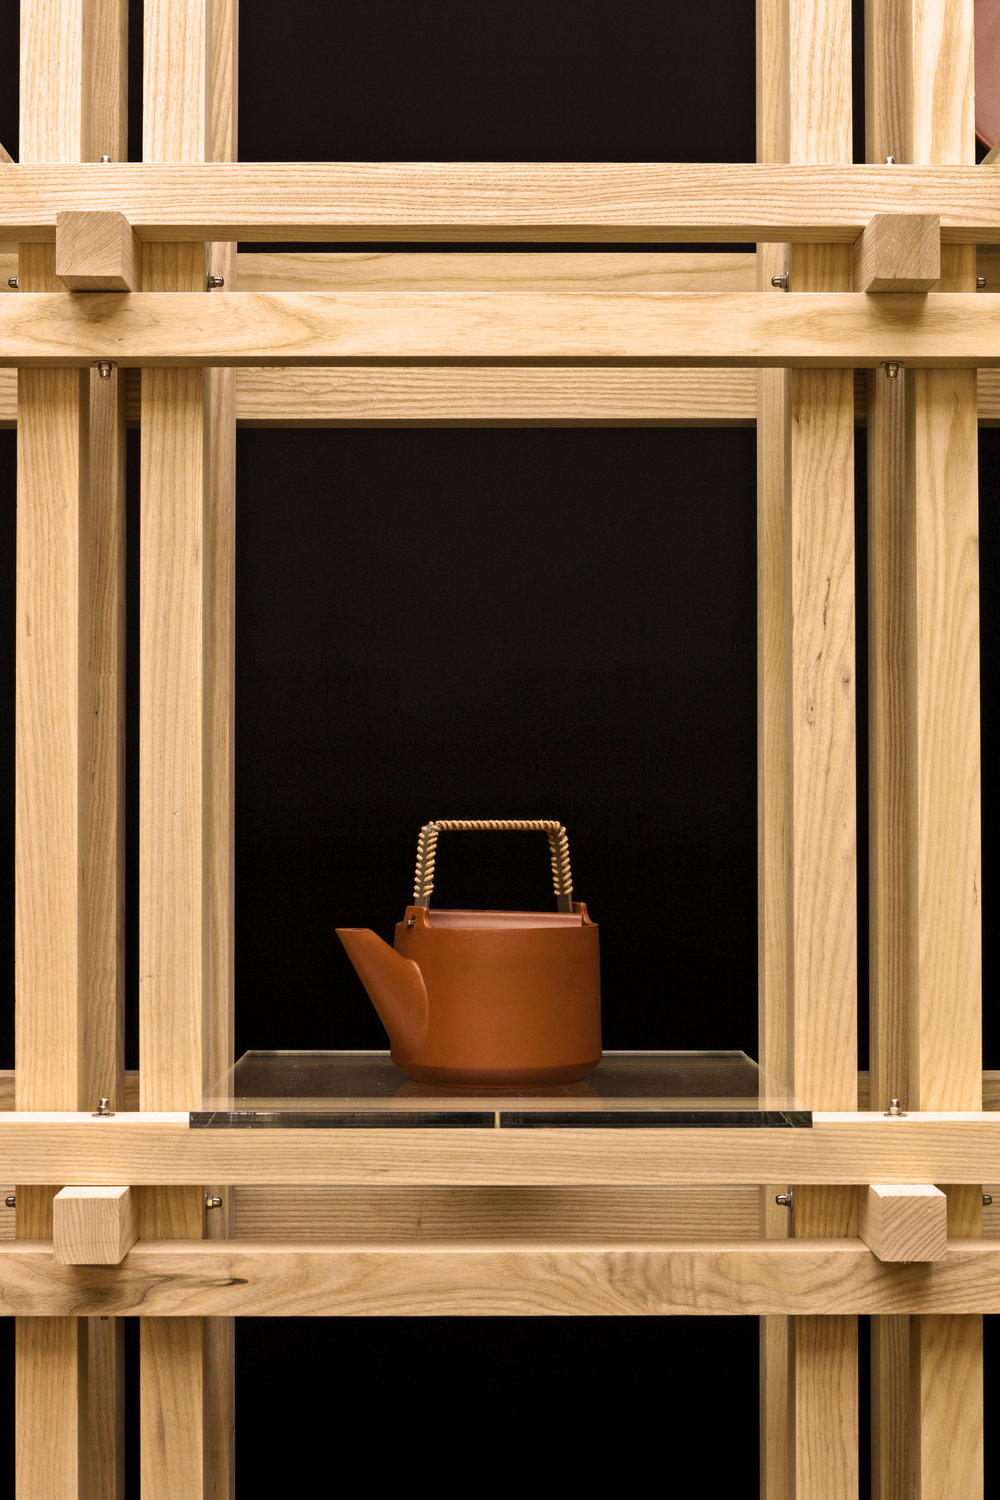 Yixing Ceramics - Tea House - Salone Mobile © Michael Franke